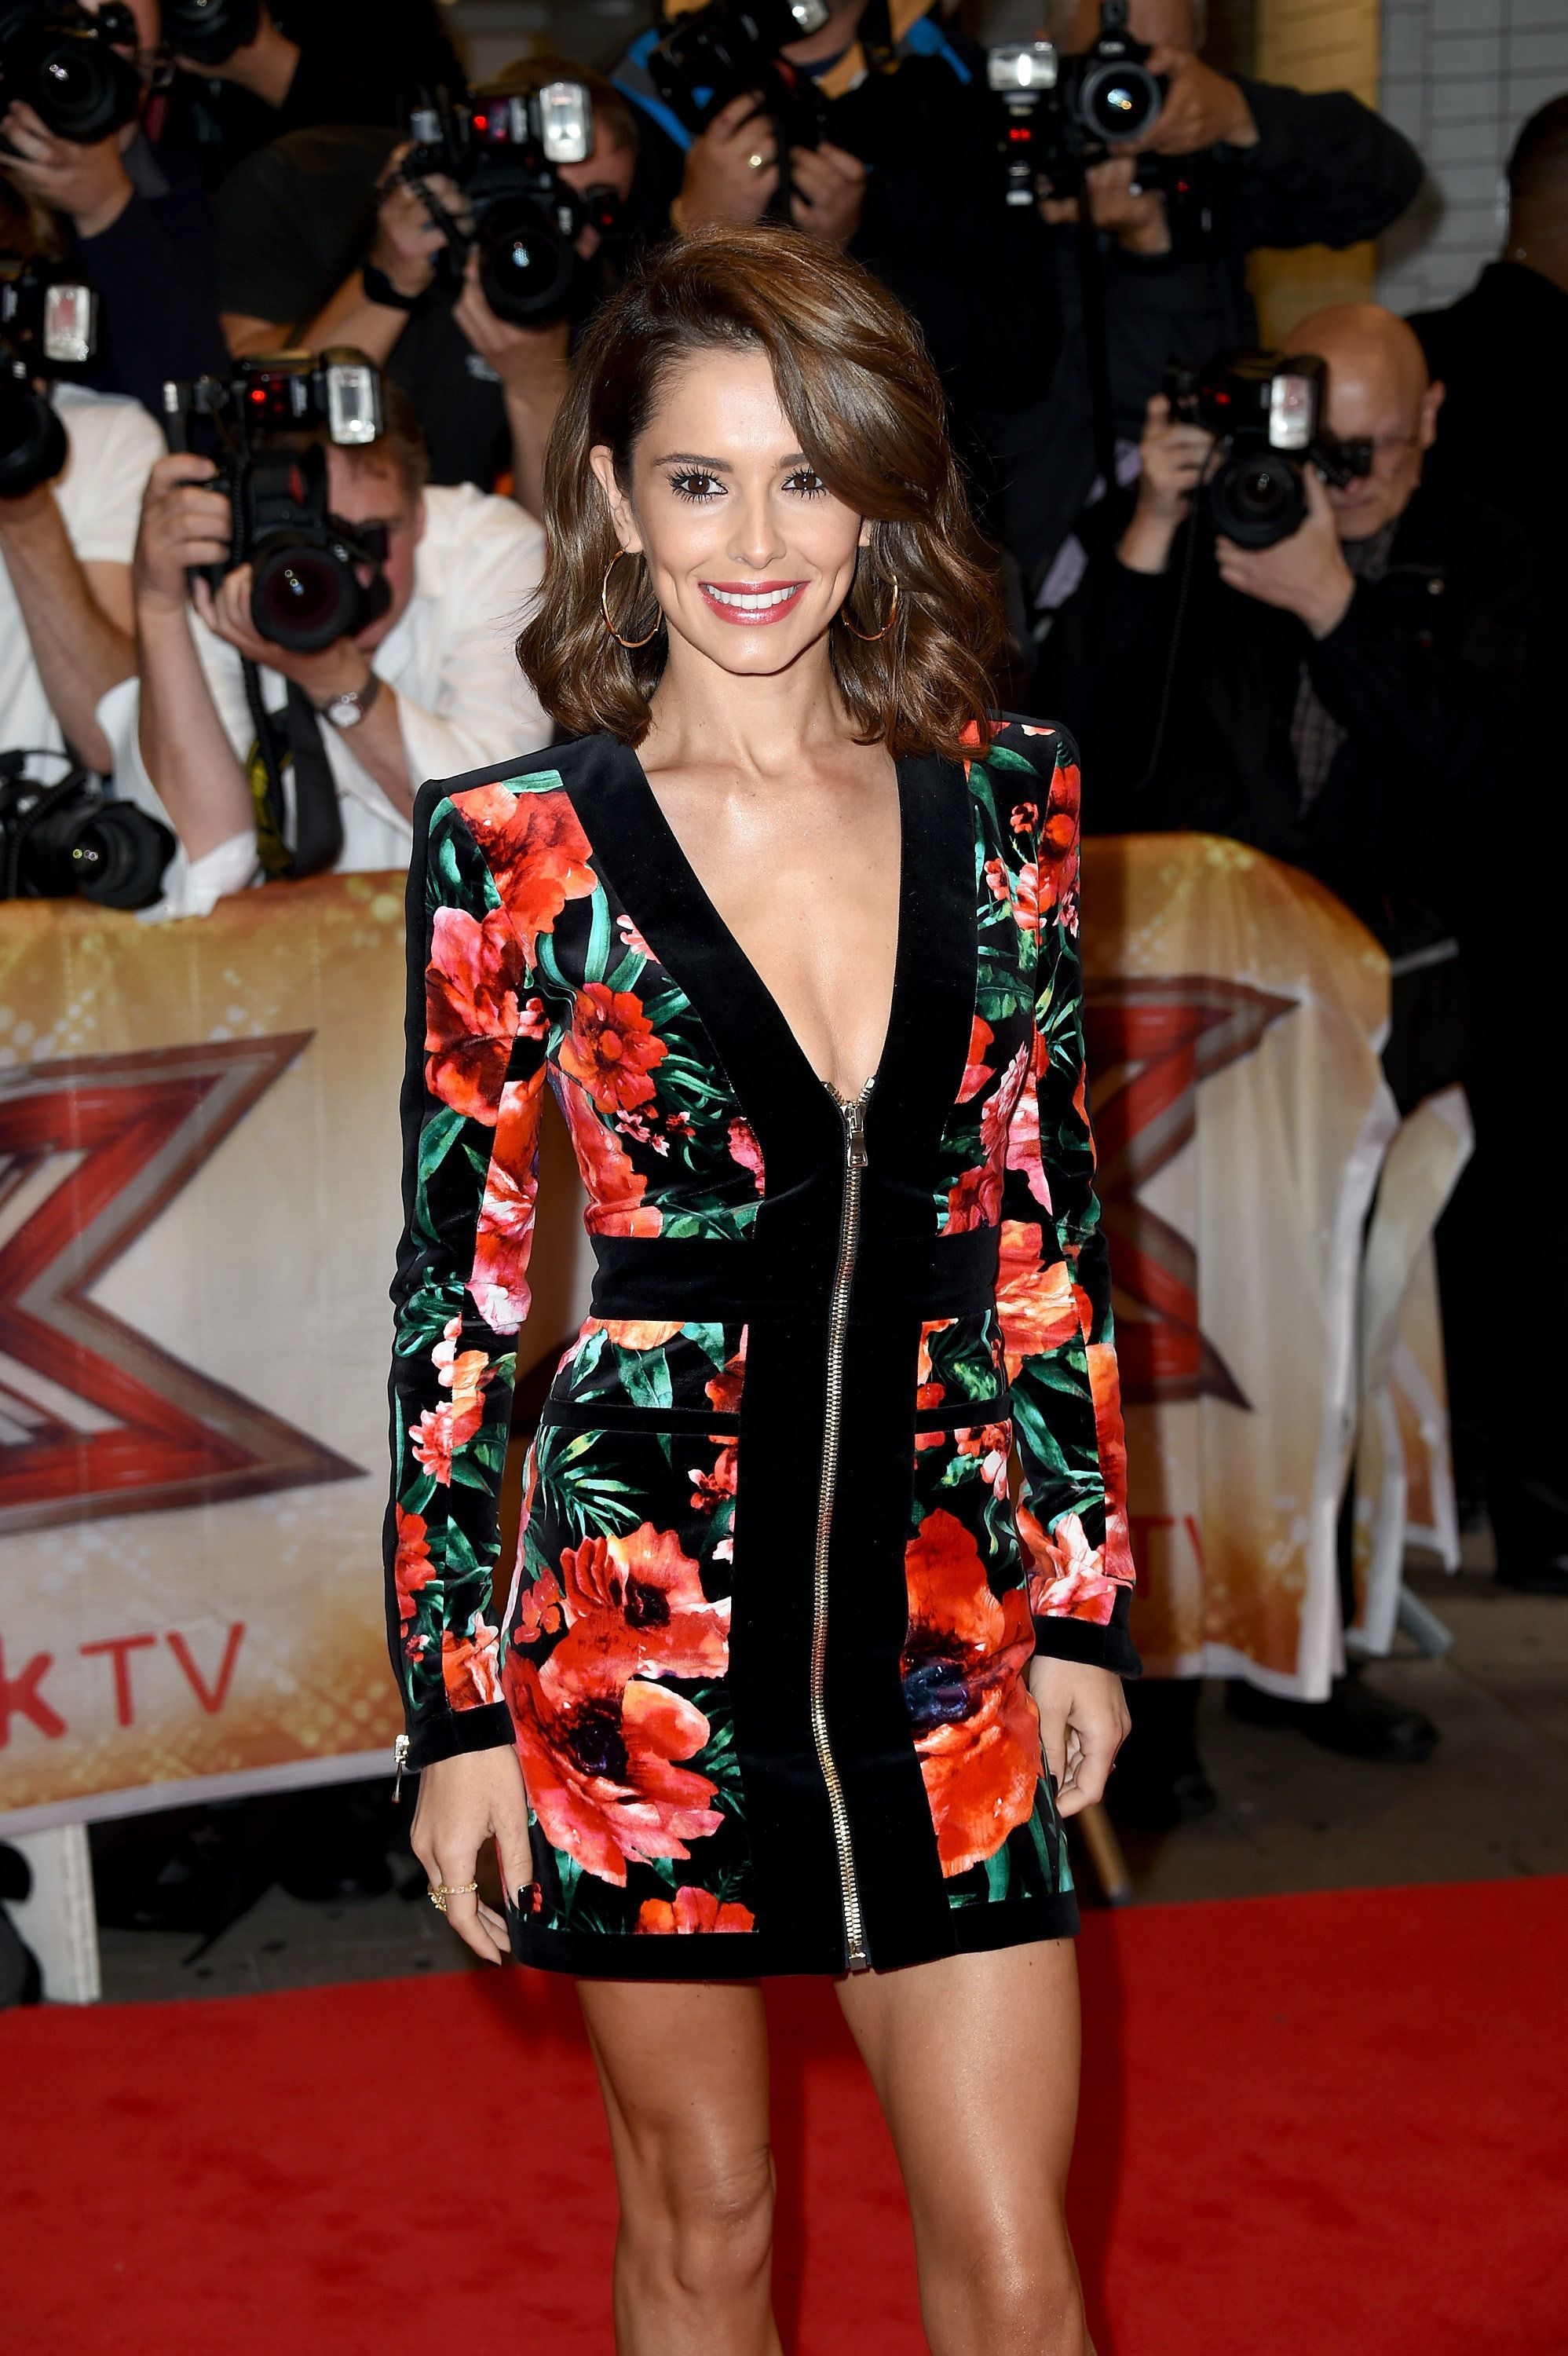 view download images  Images 'The X Factor' 2016: Will Cheryl Fernandez-Versini Be Making A Surprise Return? | HuffPost UK